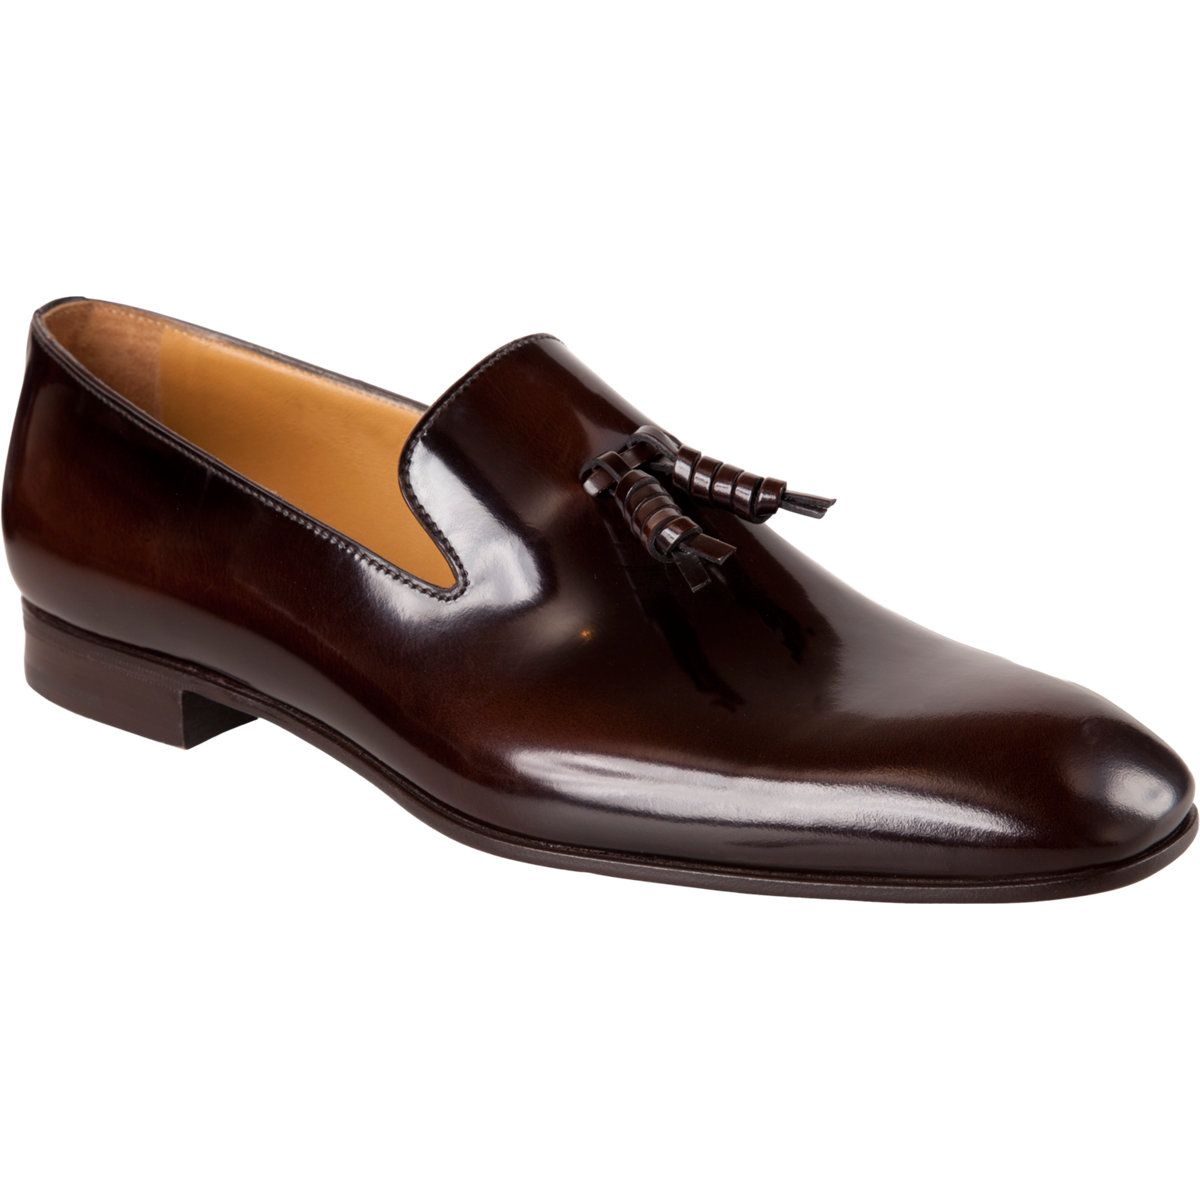 b3d7d471e ... czech prada whloecut tassel loafer at barneys 02f5b 0215d